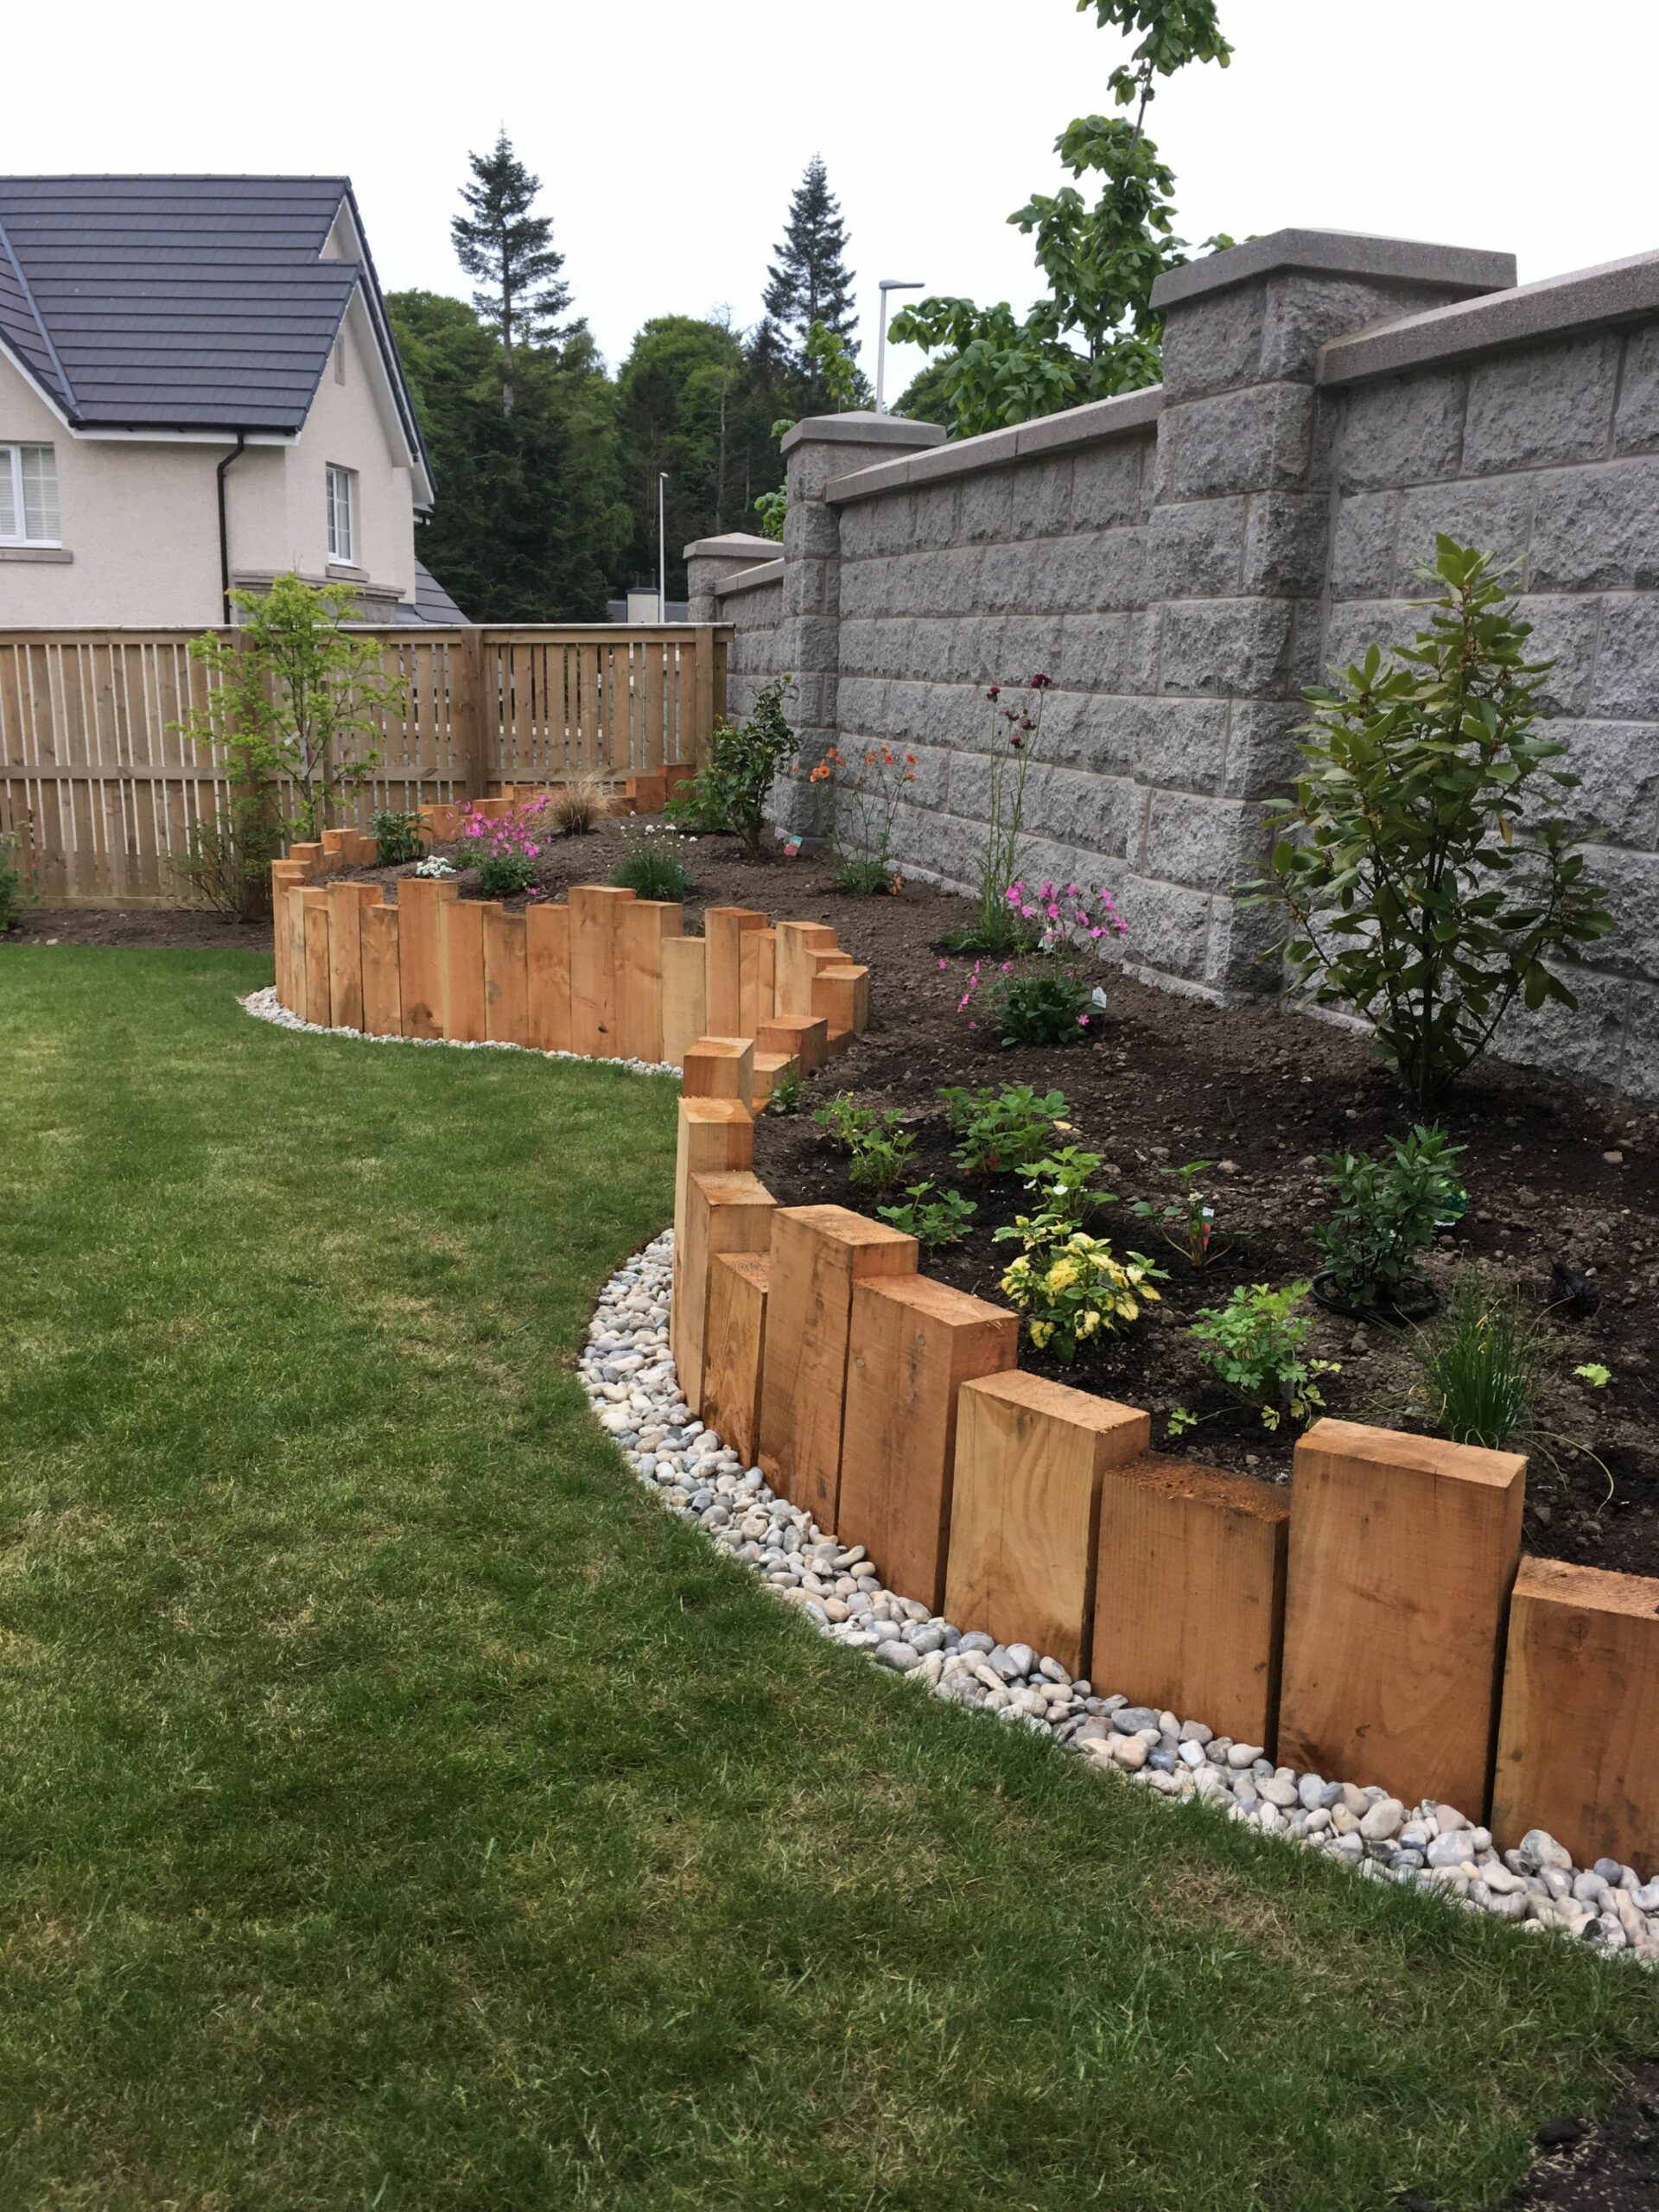 Sleeper raised border | Backyard landscaping designs